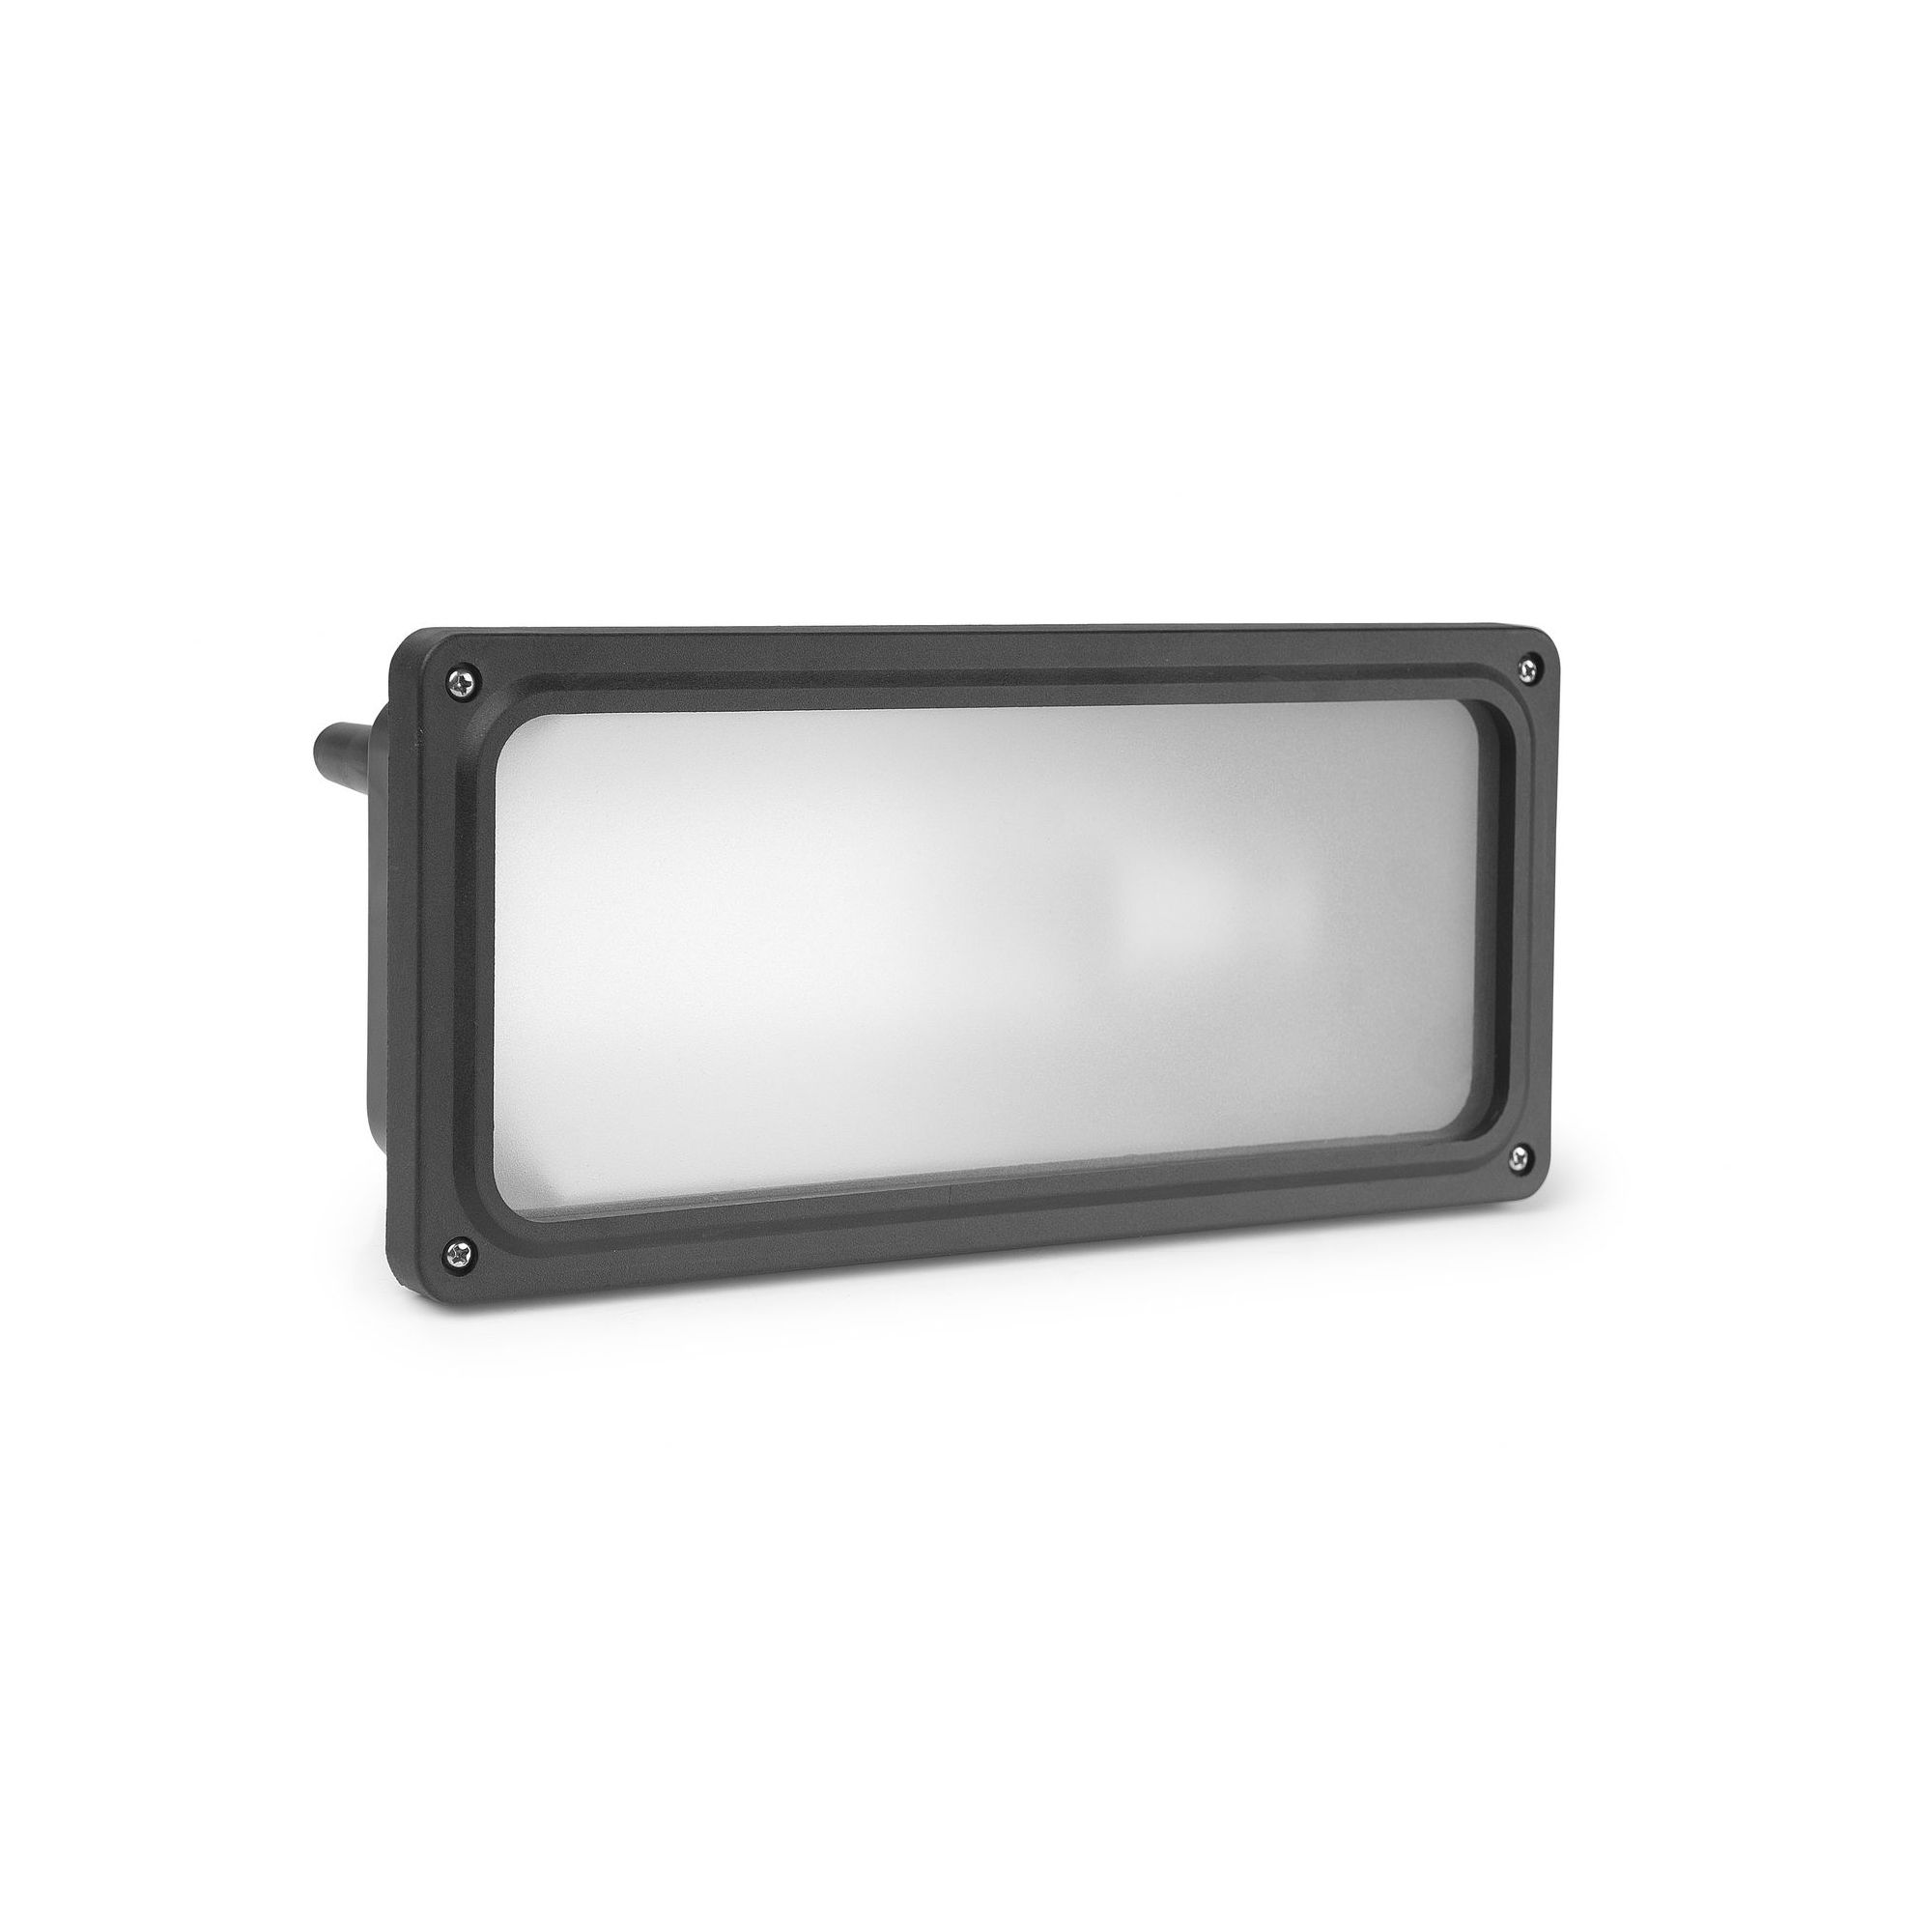 Home and garden > Lighting: SLV Kalu Recessed Wall Light - Special Offers